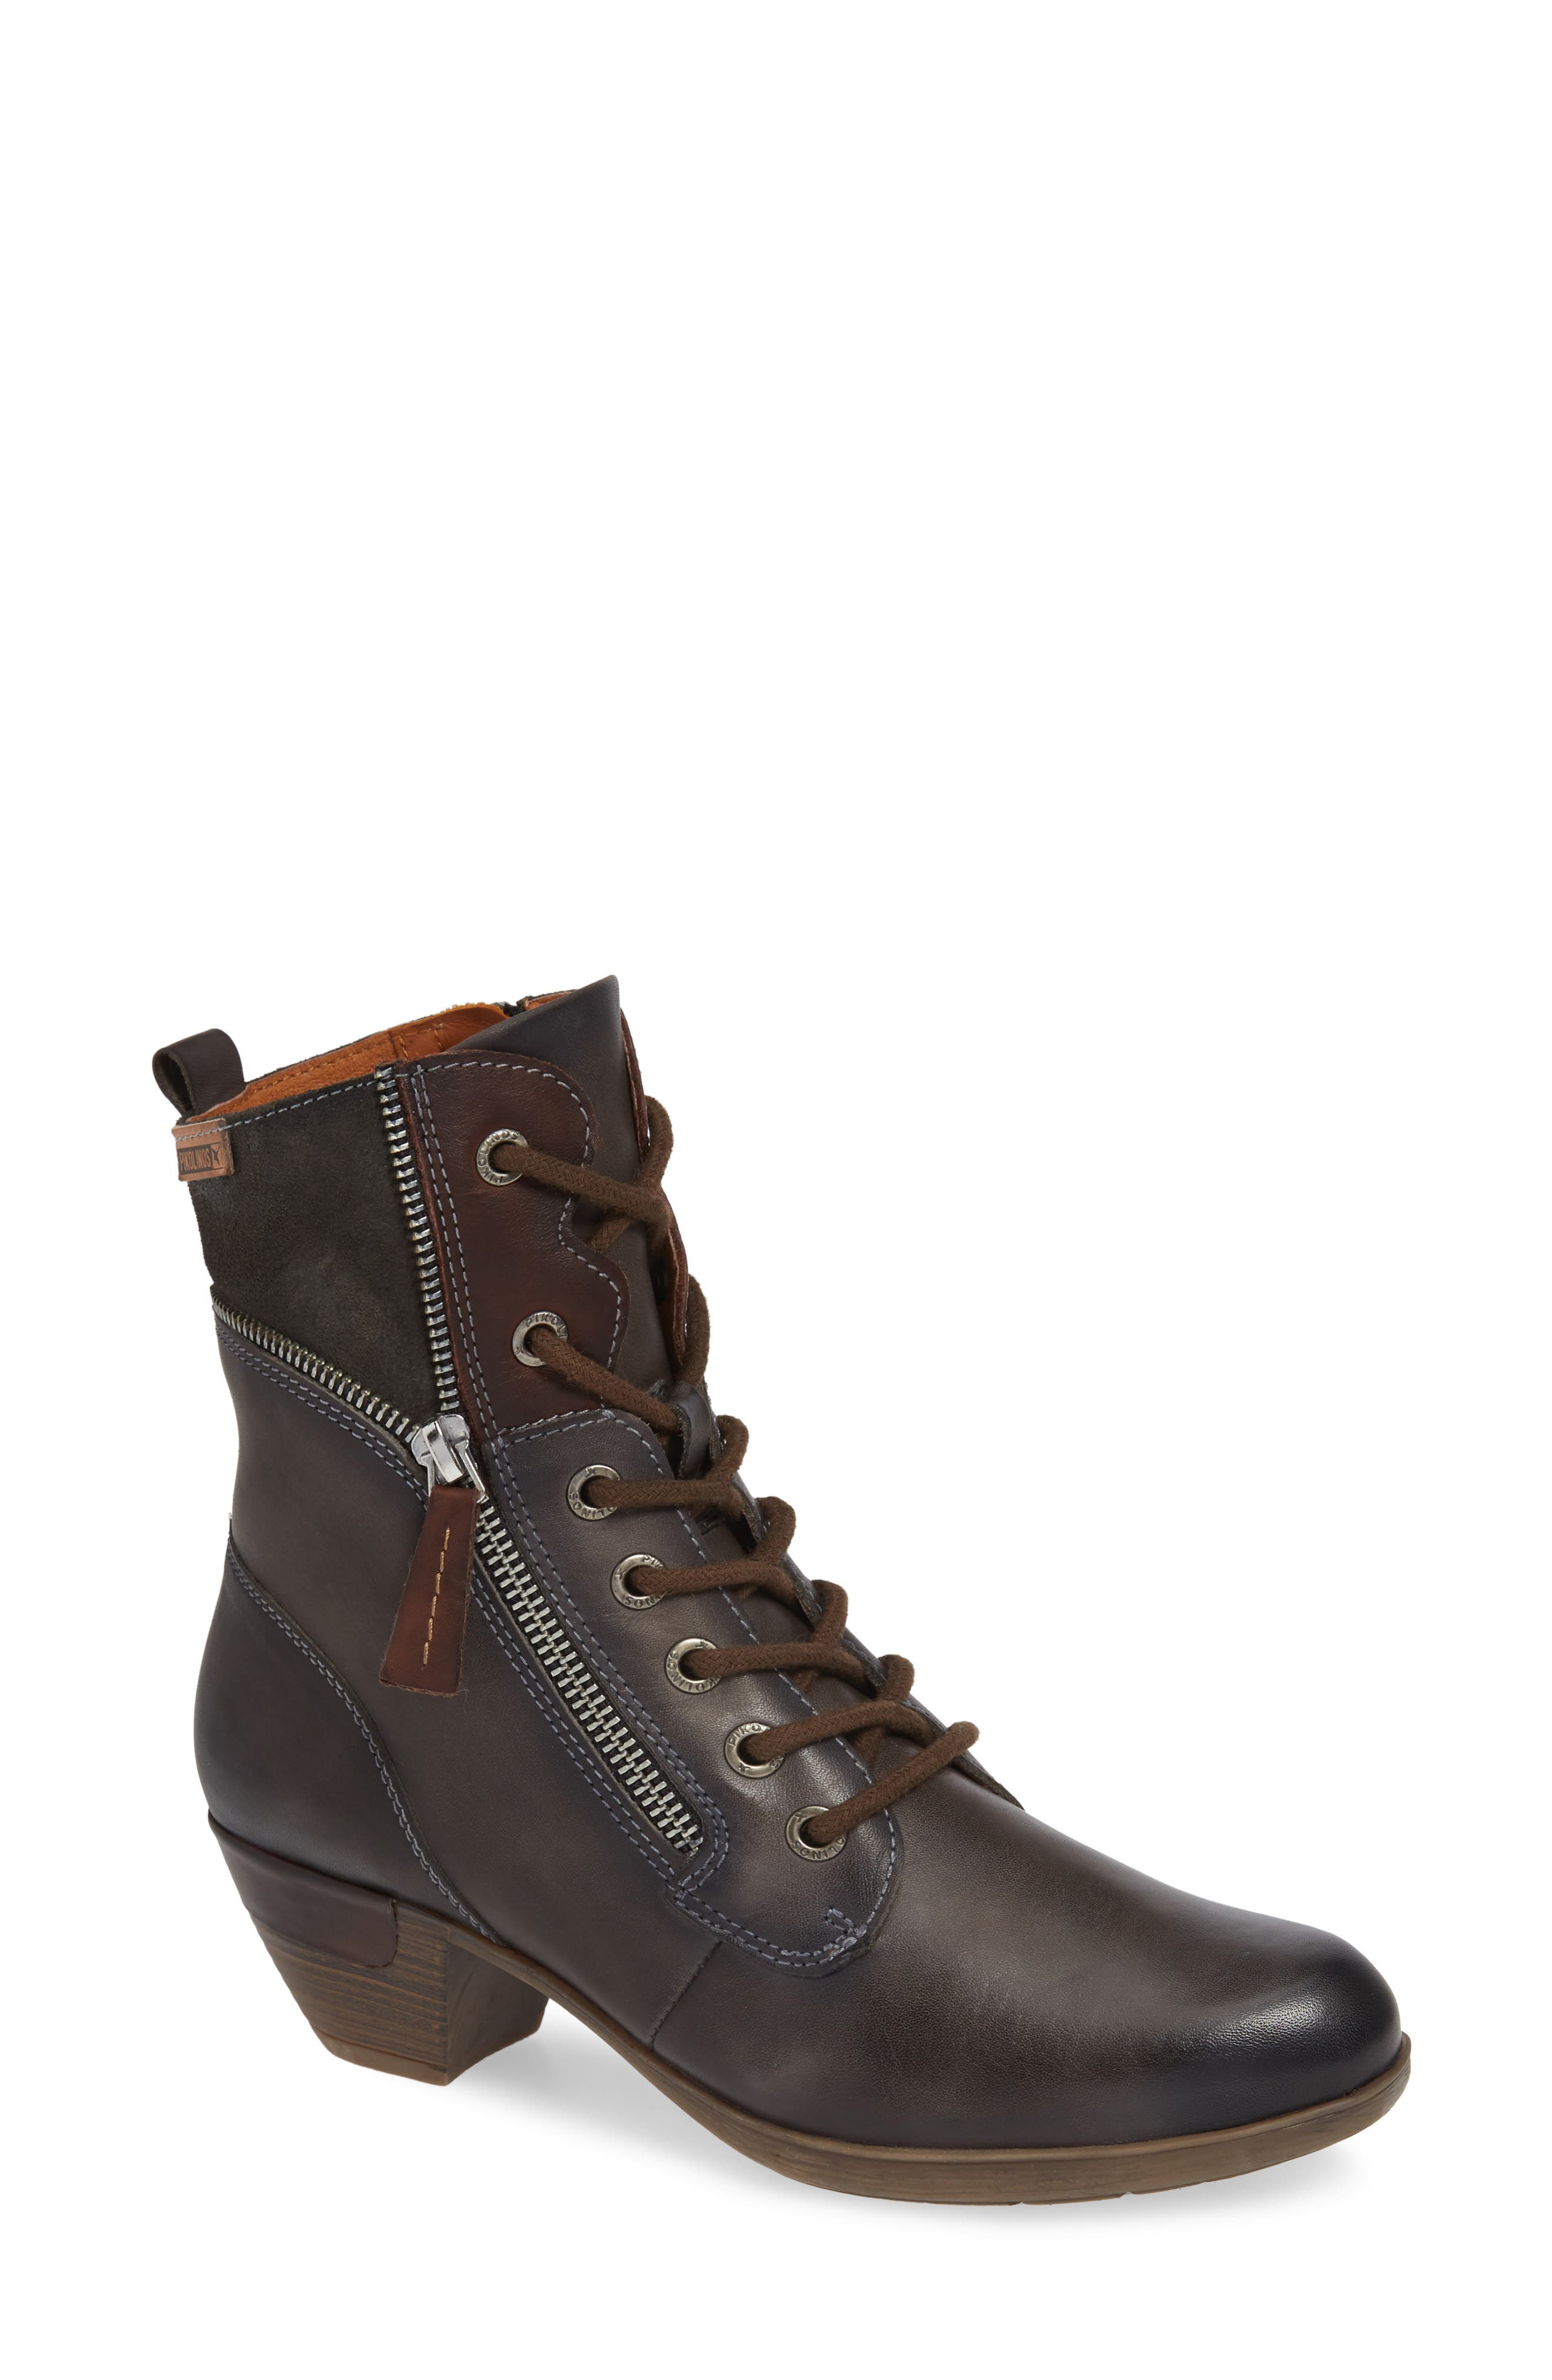 Rotterdam Bootie,                             Main thumbnail 1, color,                             LEAD LEATHER